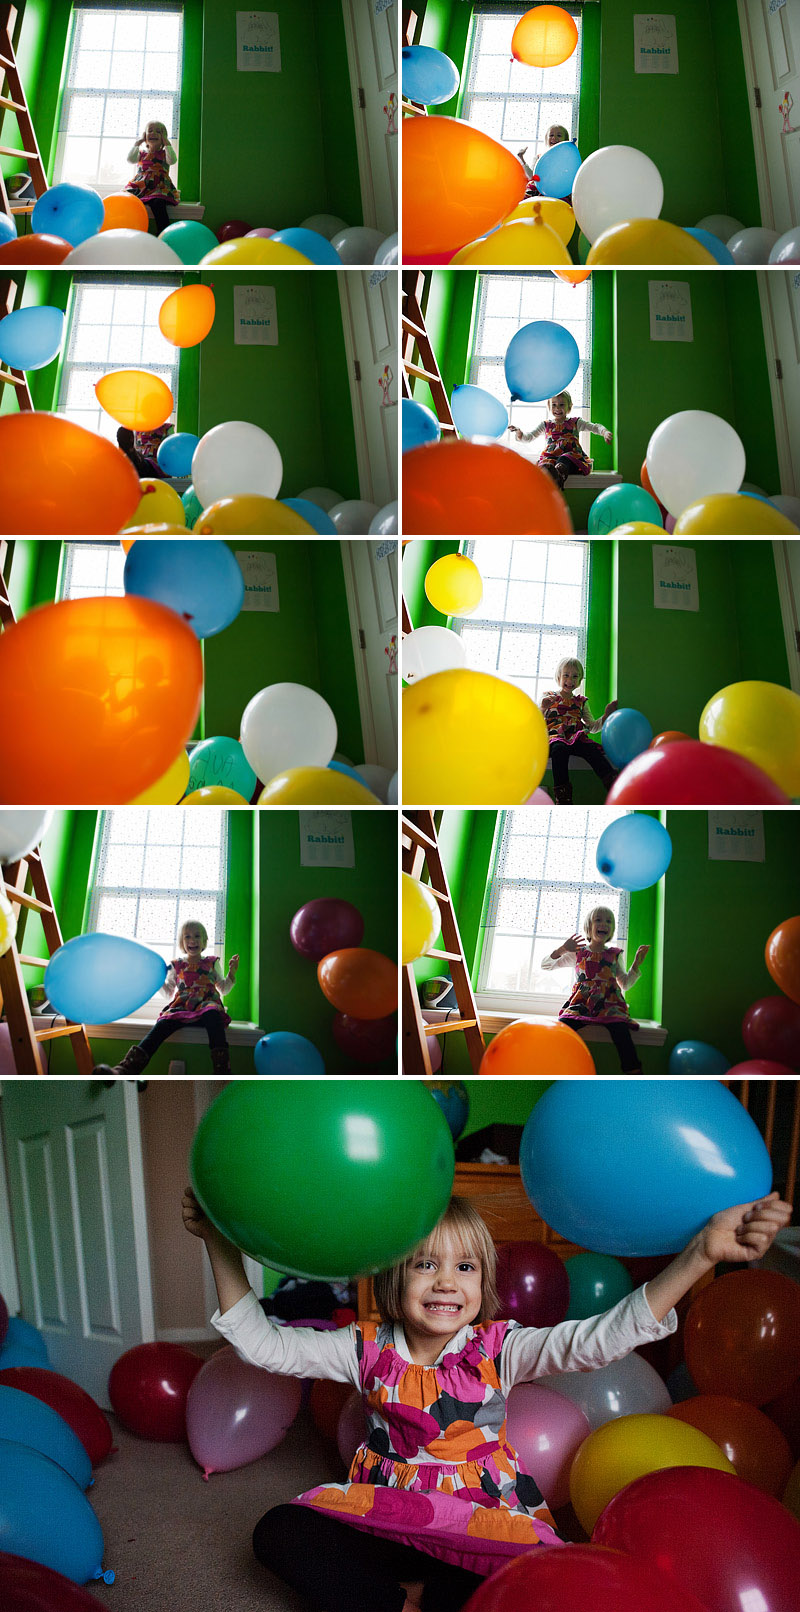 Balloon fun with a 5 year old.